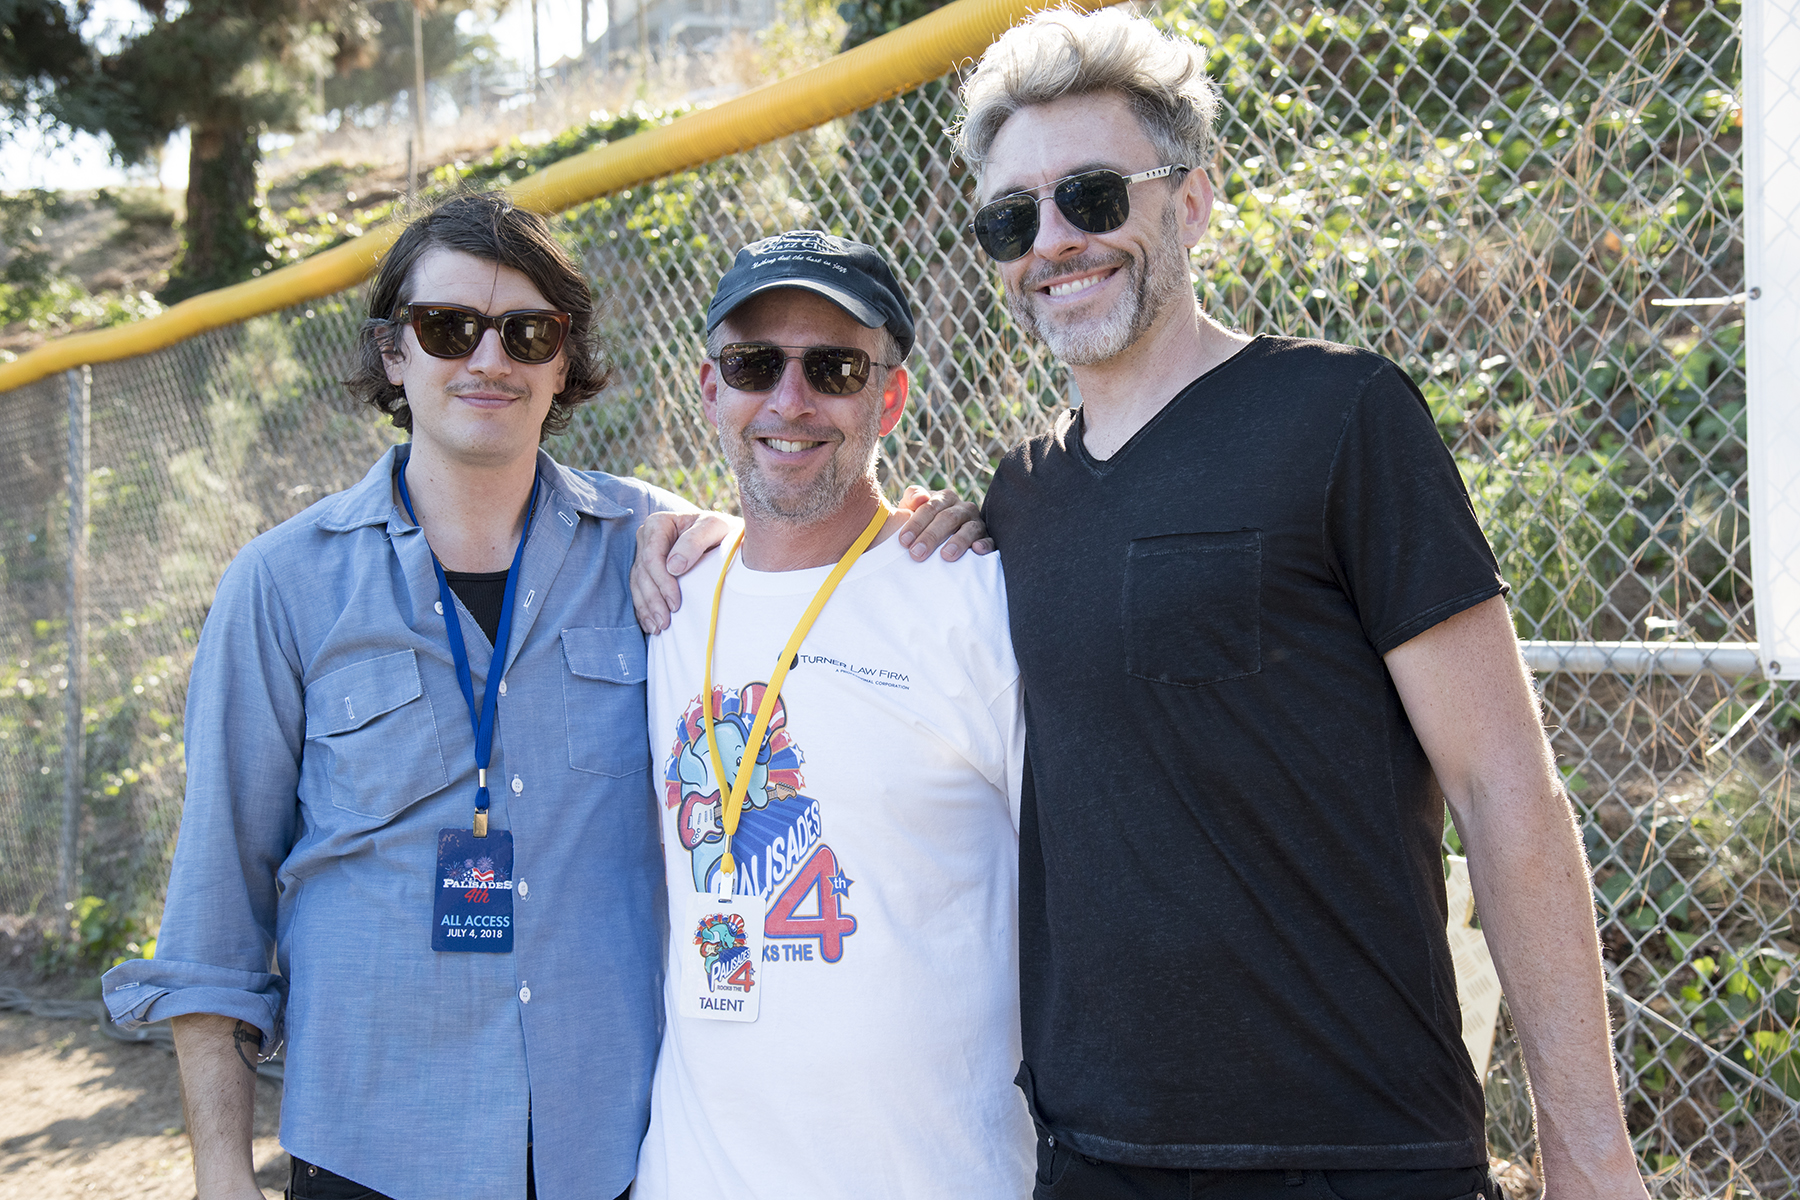 2018: the Chicago boys - Dylan, Keith and Tom